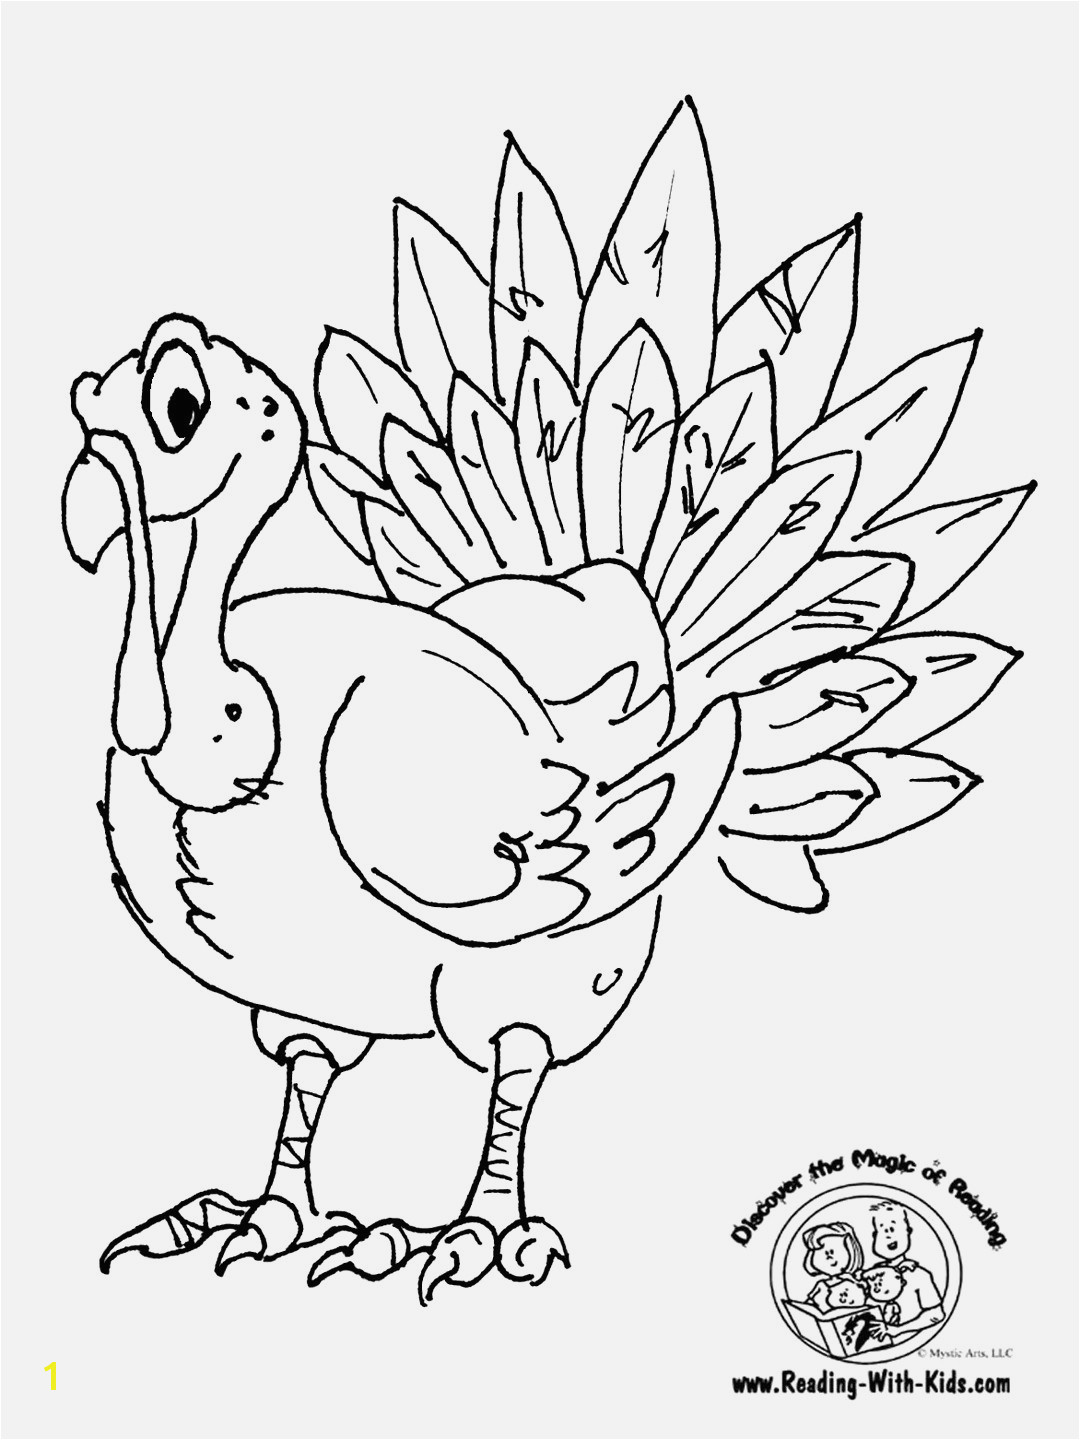 Free Printable Thanksgiving Coloring Pages Best Ever Thanksgiving Coloring Pages Kids Best Best Coloring Page Adult Od